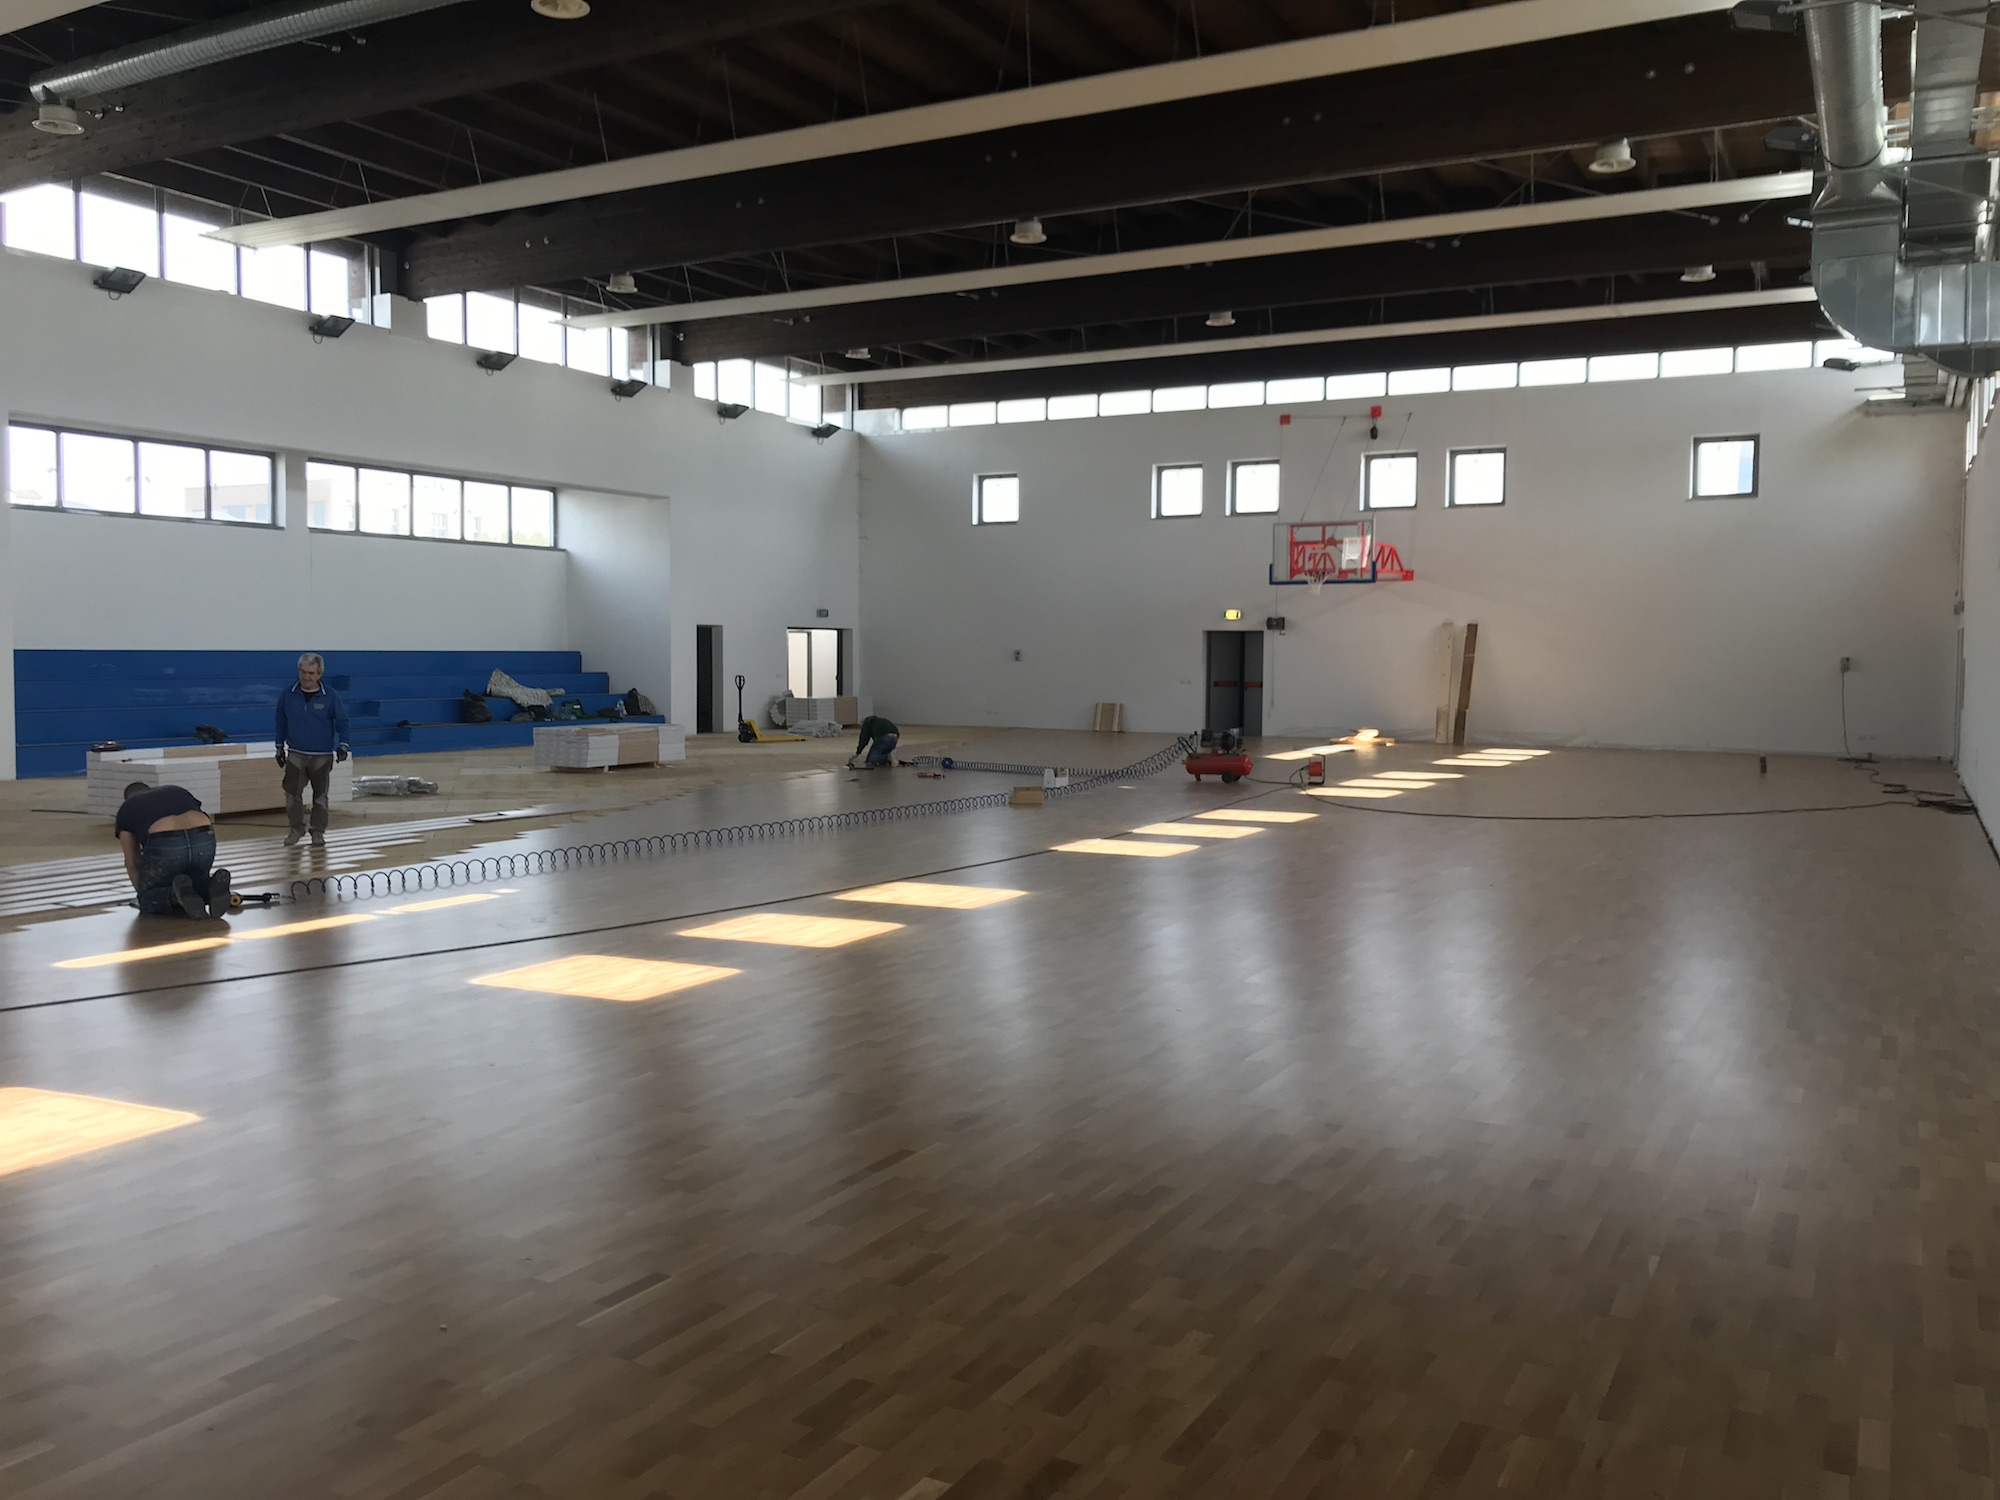 Laying of sports flooring